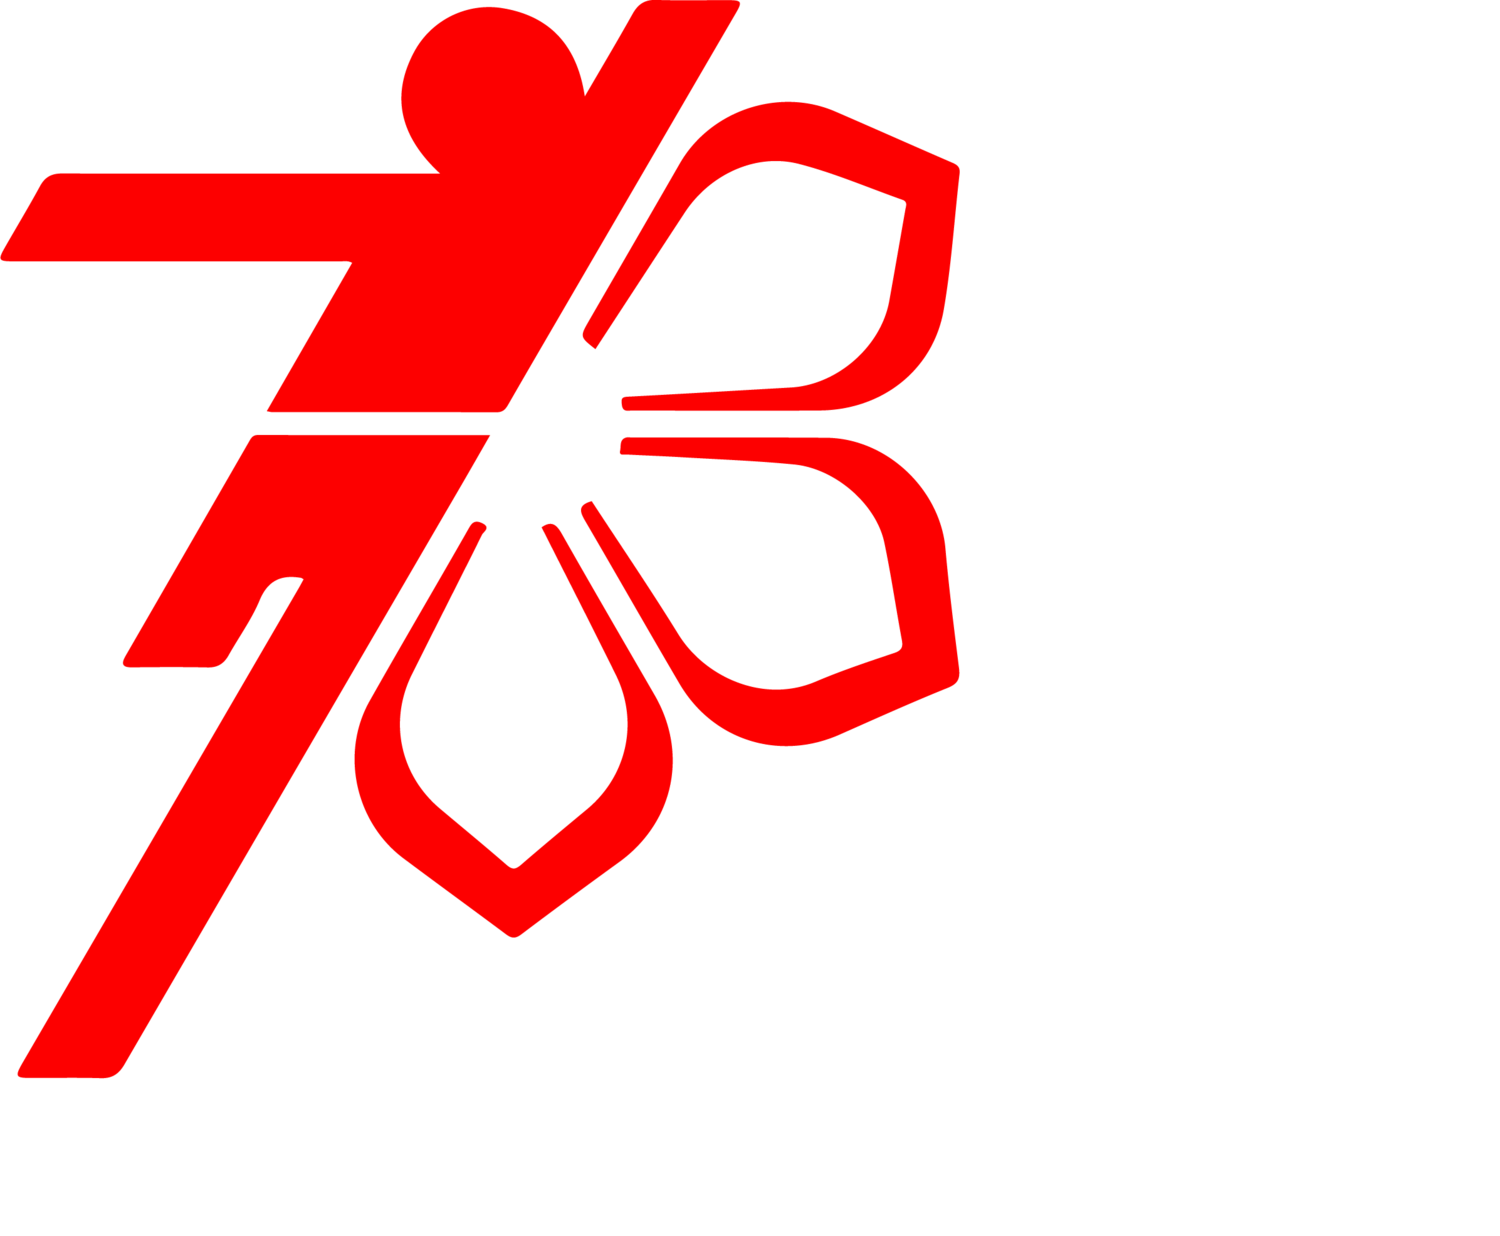 Amputee Coalition of BC